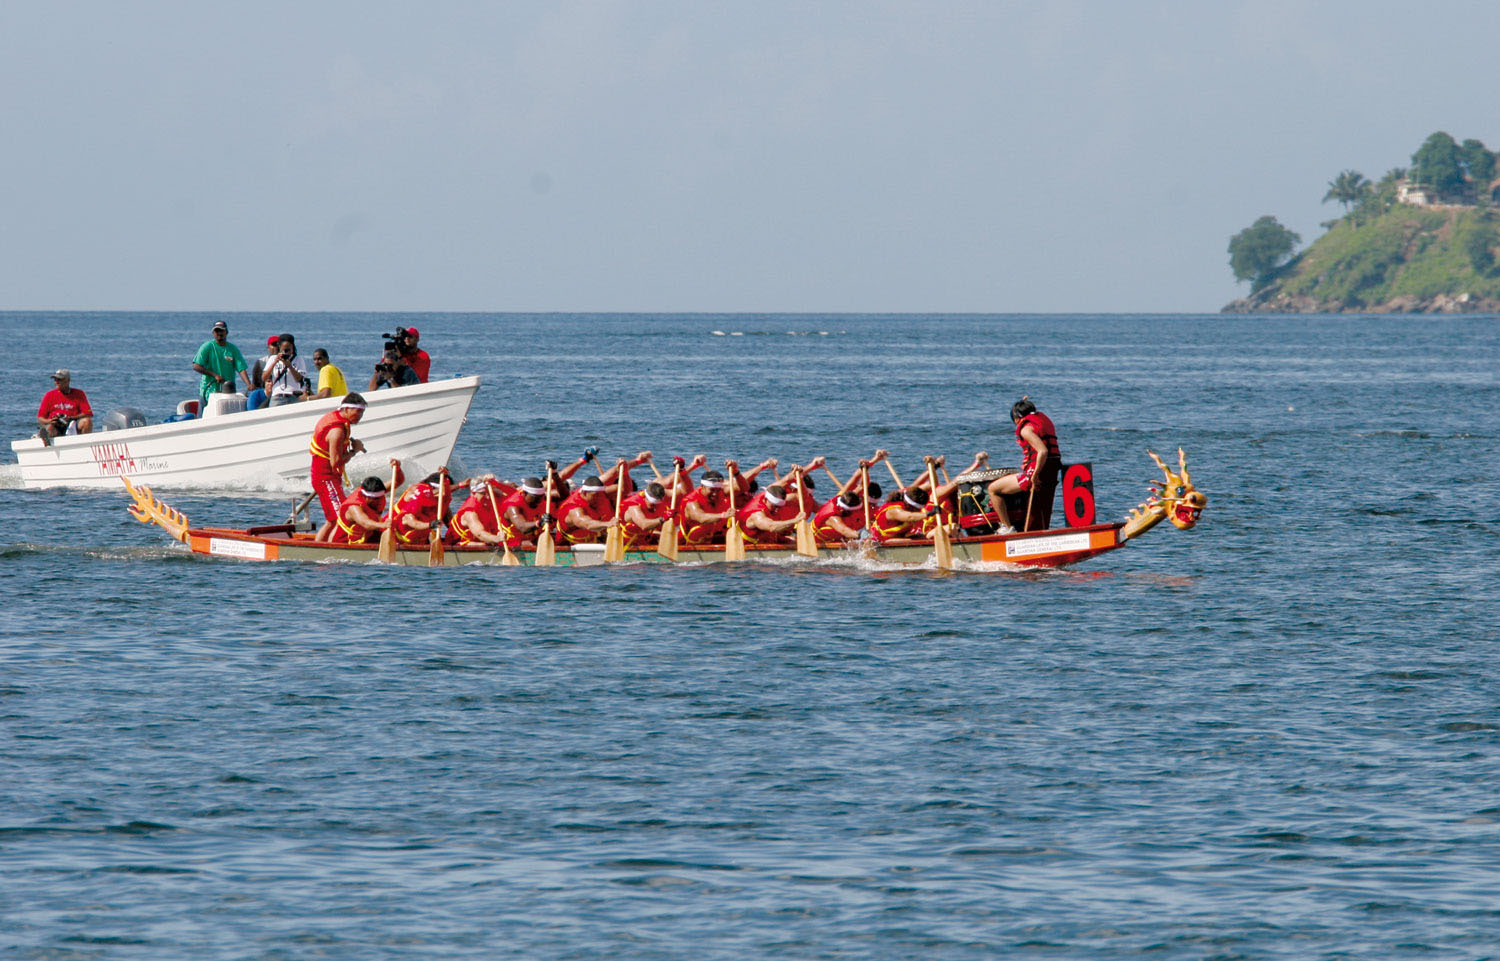 The dragons racing in the first dragon boat festival in Trinidad, October 2006. Photograph courtesy The Trinidad And Tobago Dragon Boat Association